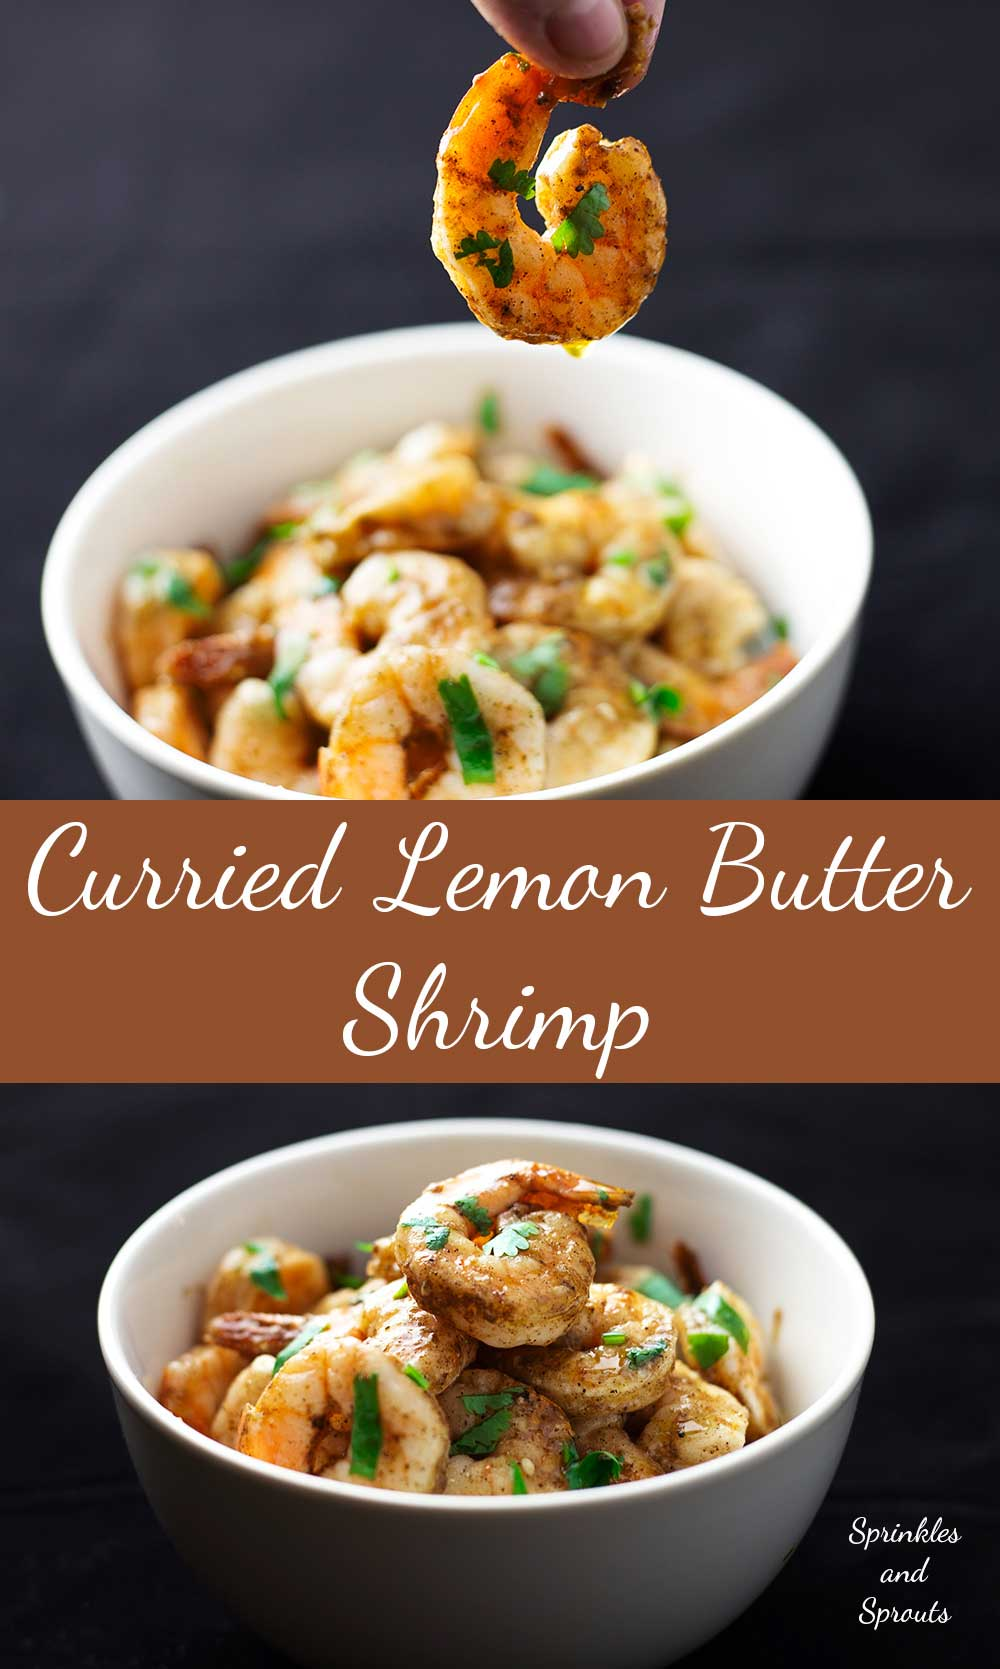 Curried Lemon Butter Shrimps(Prawns) Succulent, fragrant and finger lickingly delicious. These shrimps are so amazing!